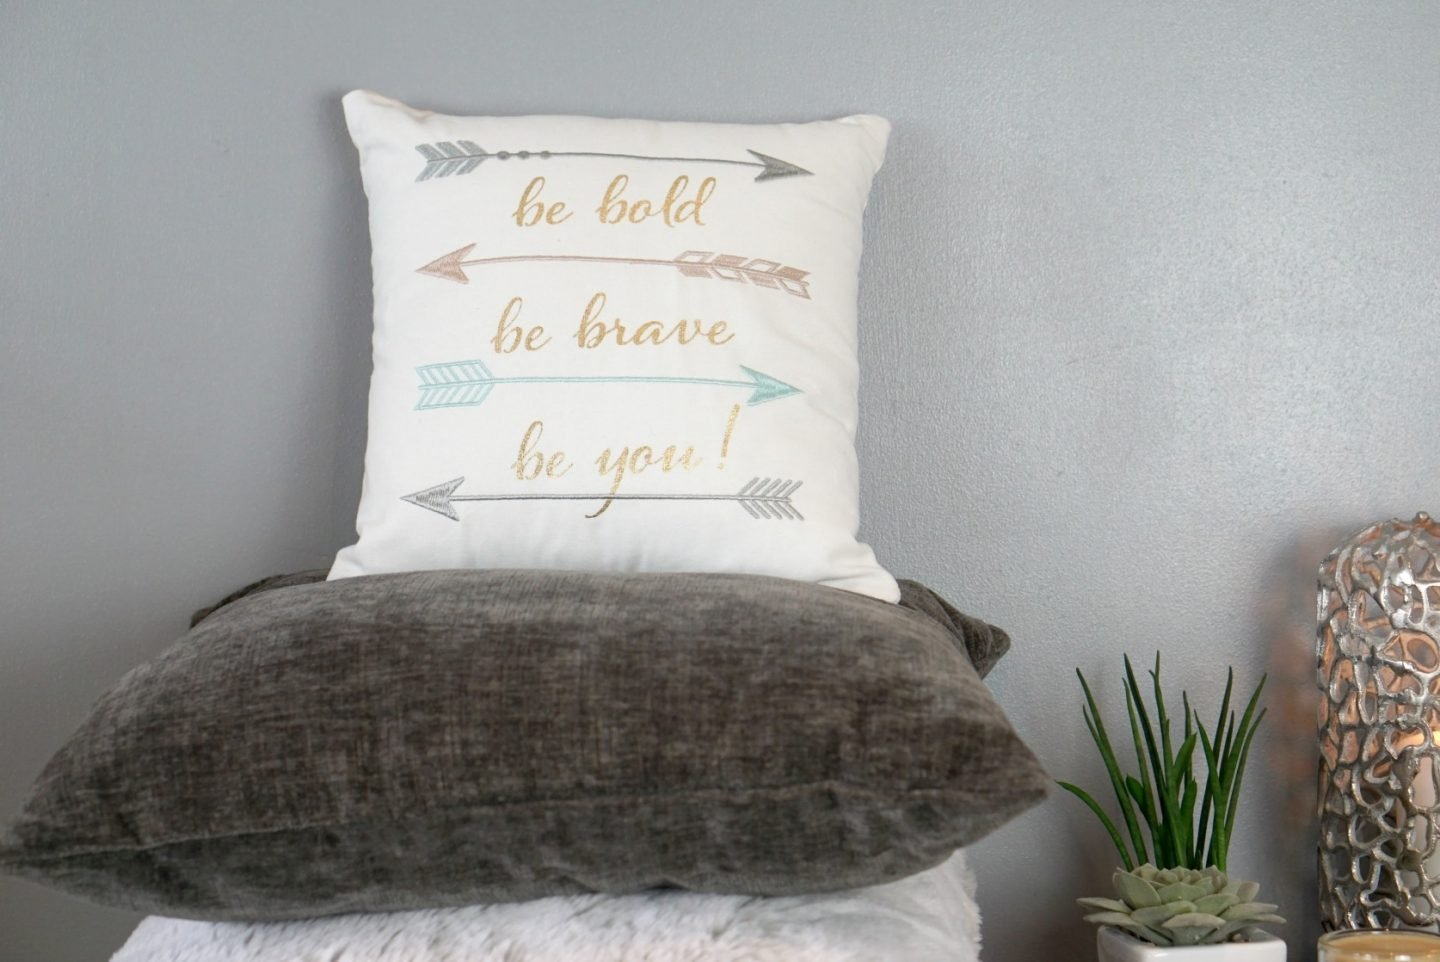 Be bold be brave be you, cosmo cushion Debenhams AW 17 www.extraordinarychaos.com